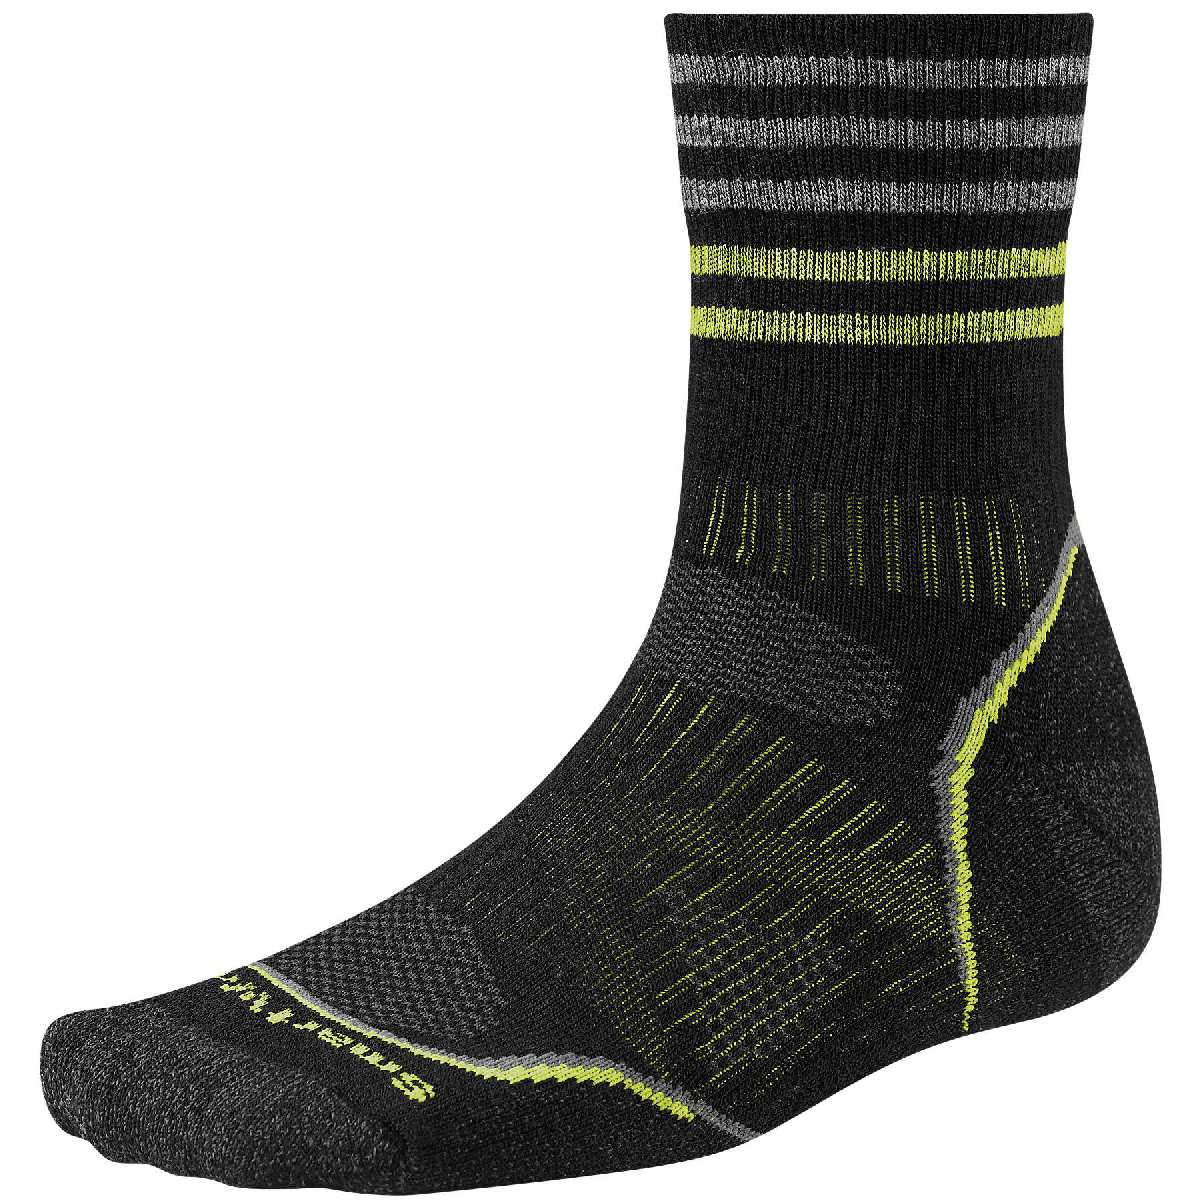 SmartWool PhD Outdoor Light Pattern Mid Crew Hiking Sock Size M Black U.S.A. & Canada